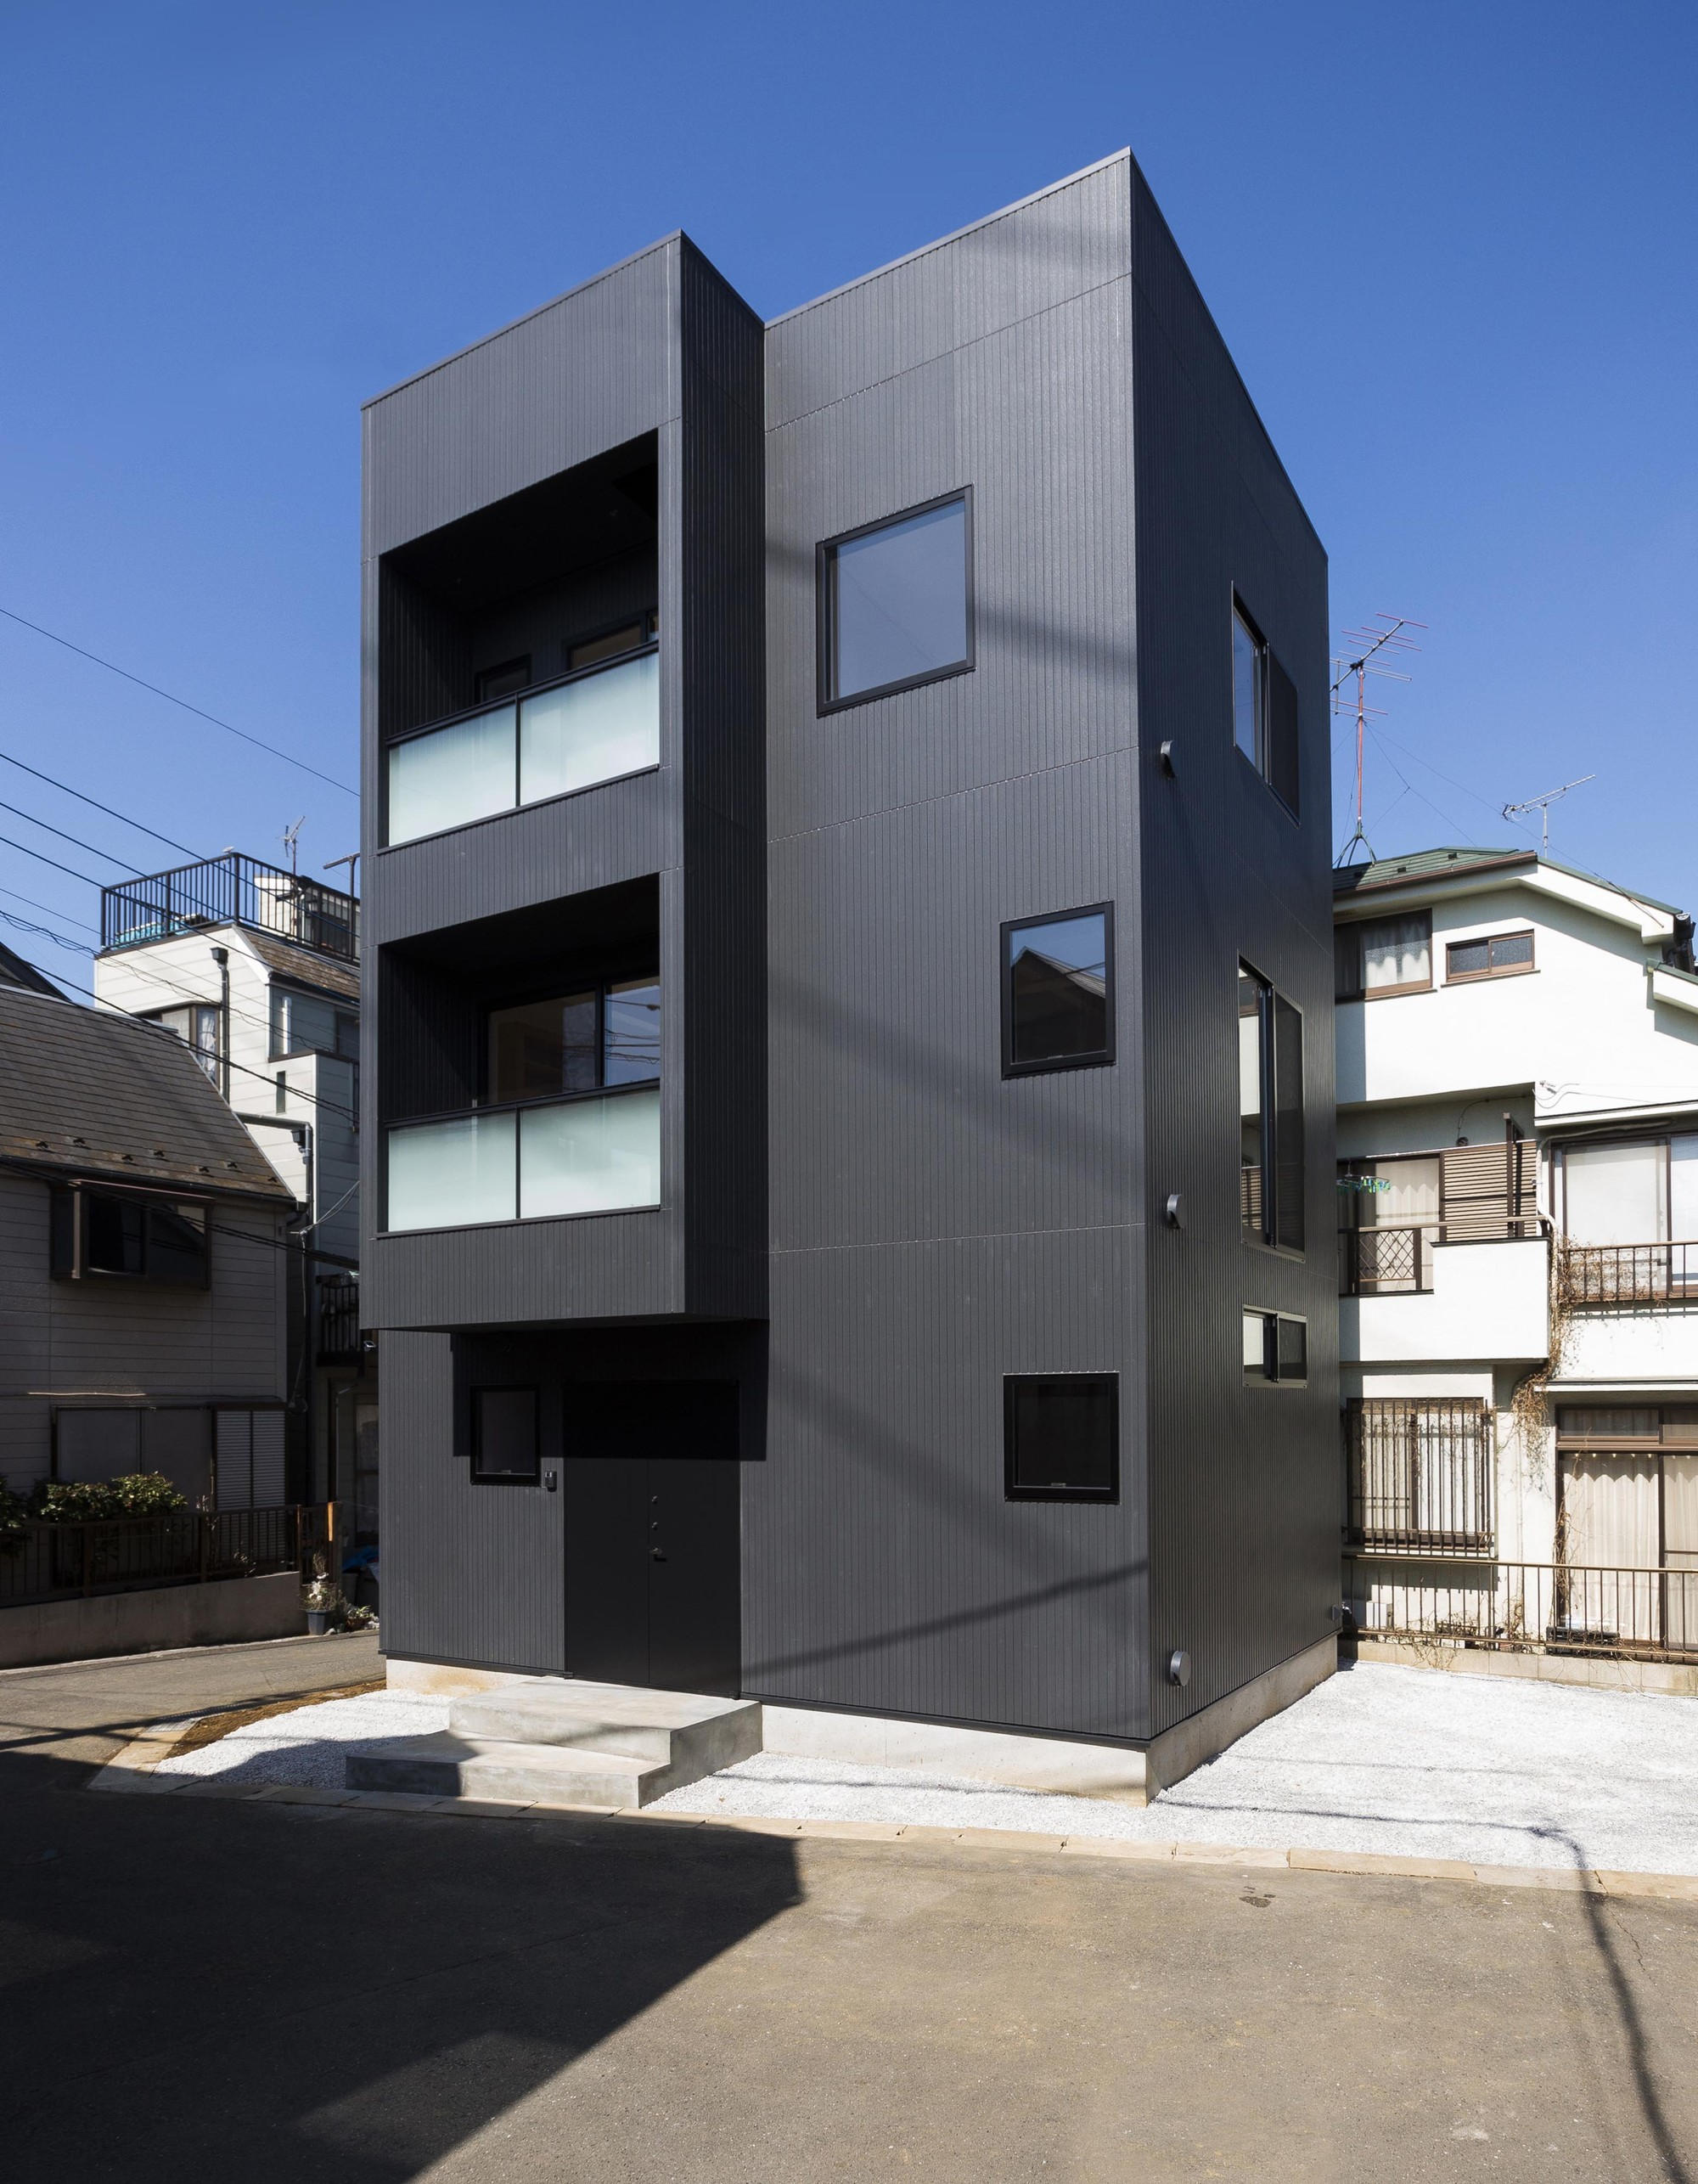 Gallery of Hibarigaoka S house / Kaida Architecture Design Office - 1